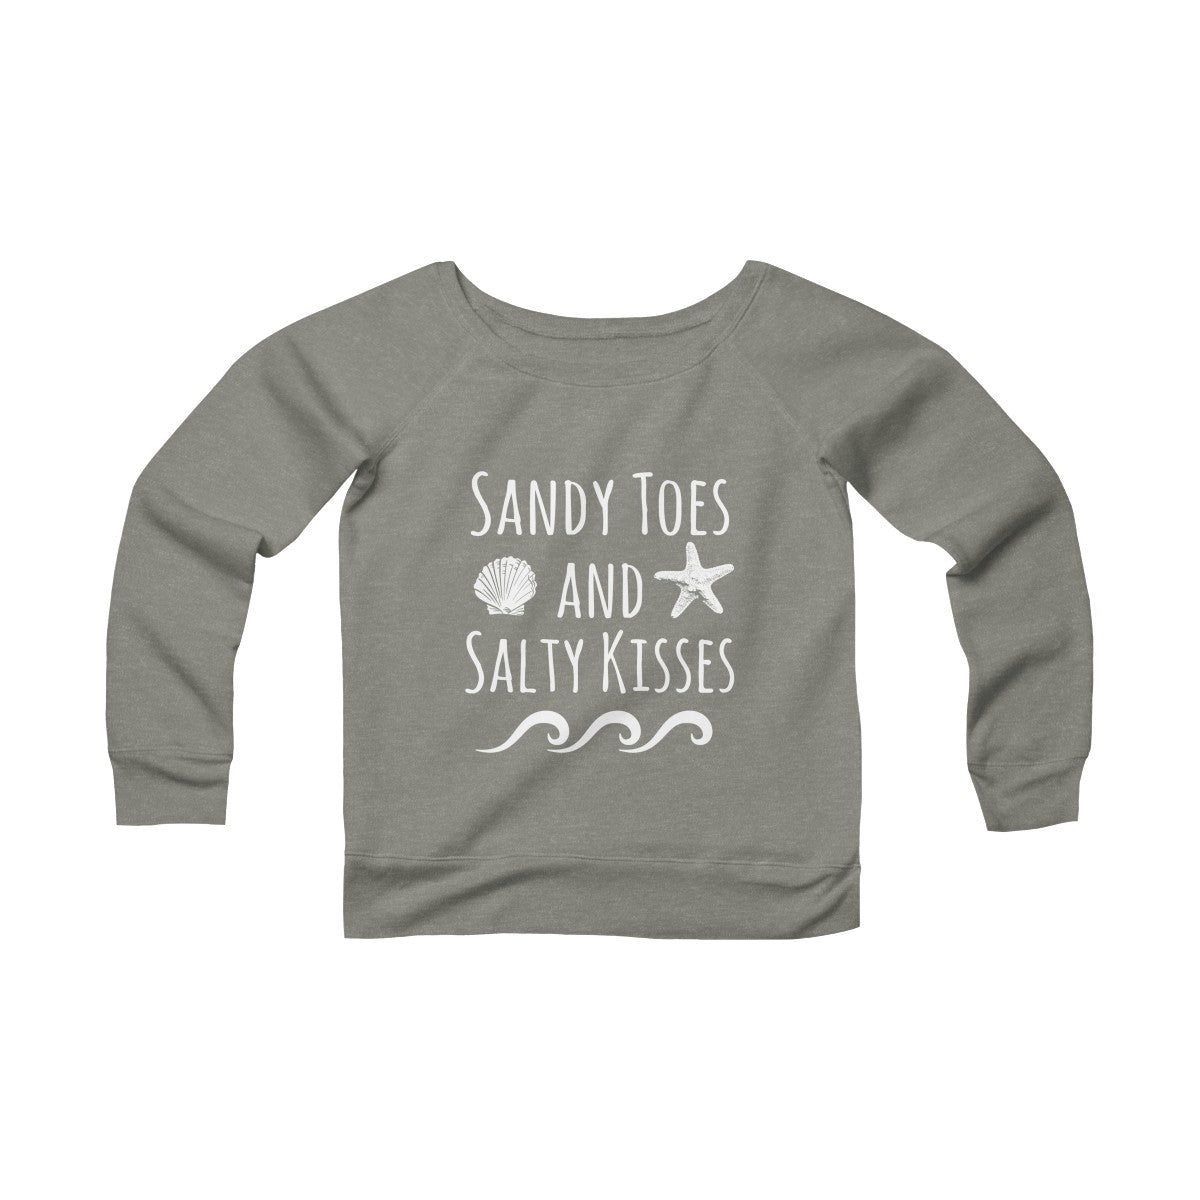 Sandy Toes and Salty Kisses Sponge Fleece Wide Neck Sweatshirt